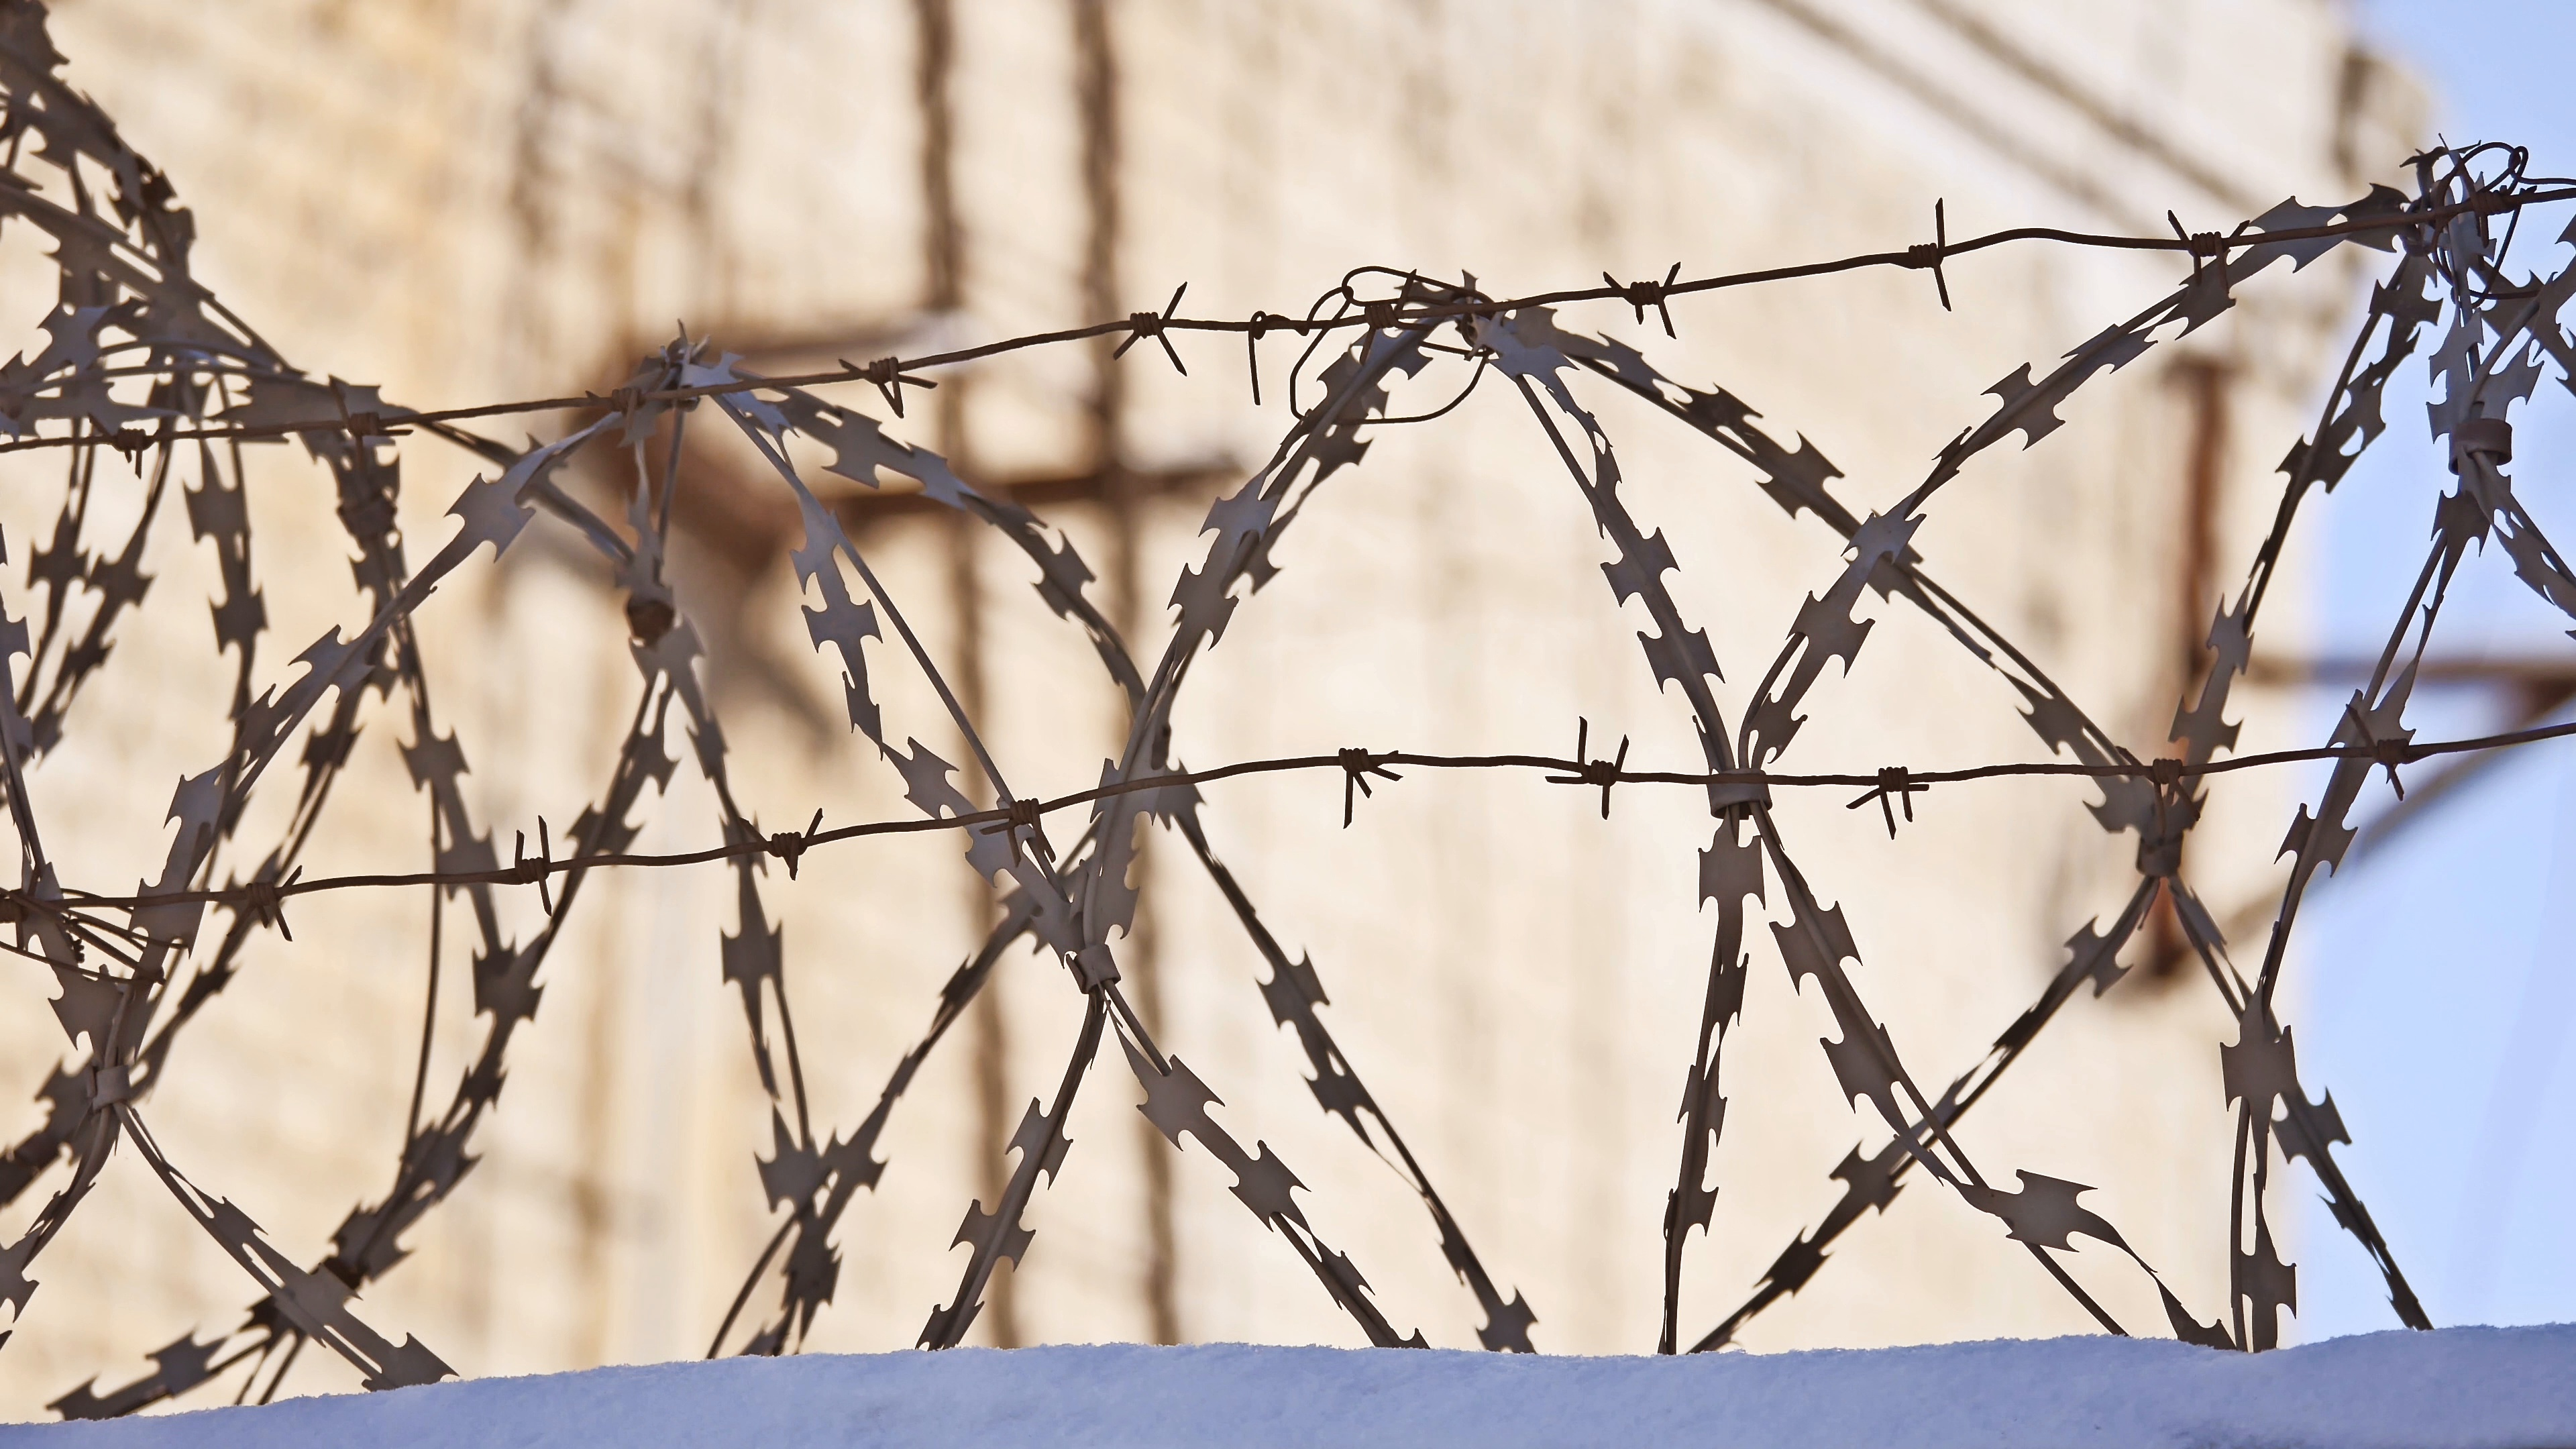 Video: Barbed wire fence at the prison, the sun glare on a ...